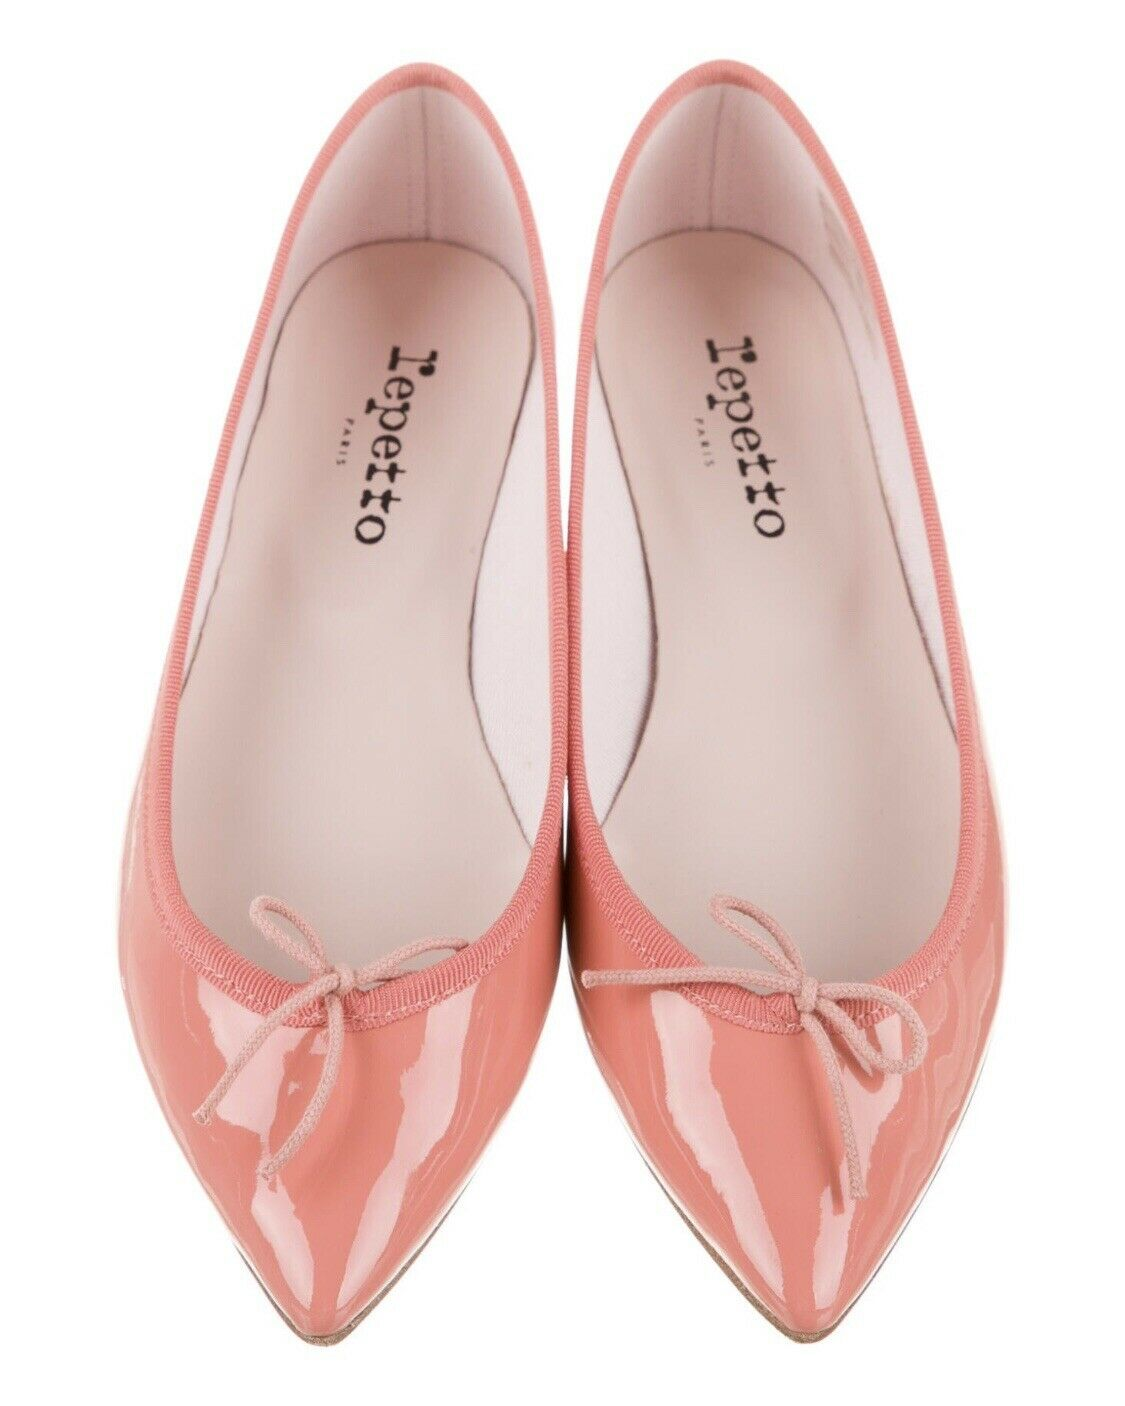 Repetto Shoes - image 1